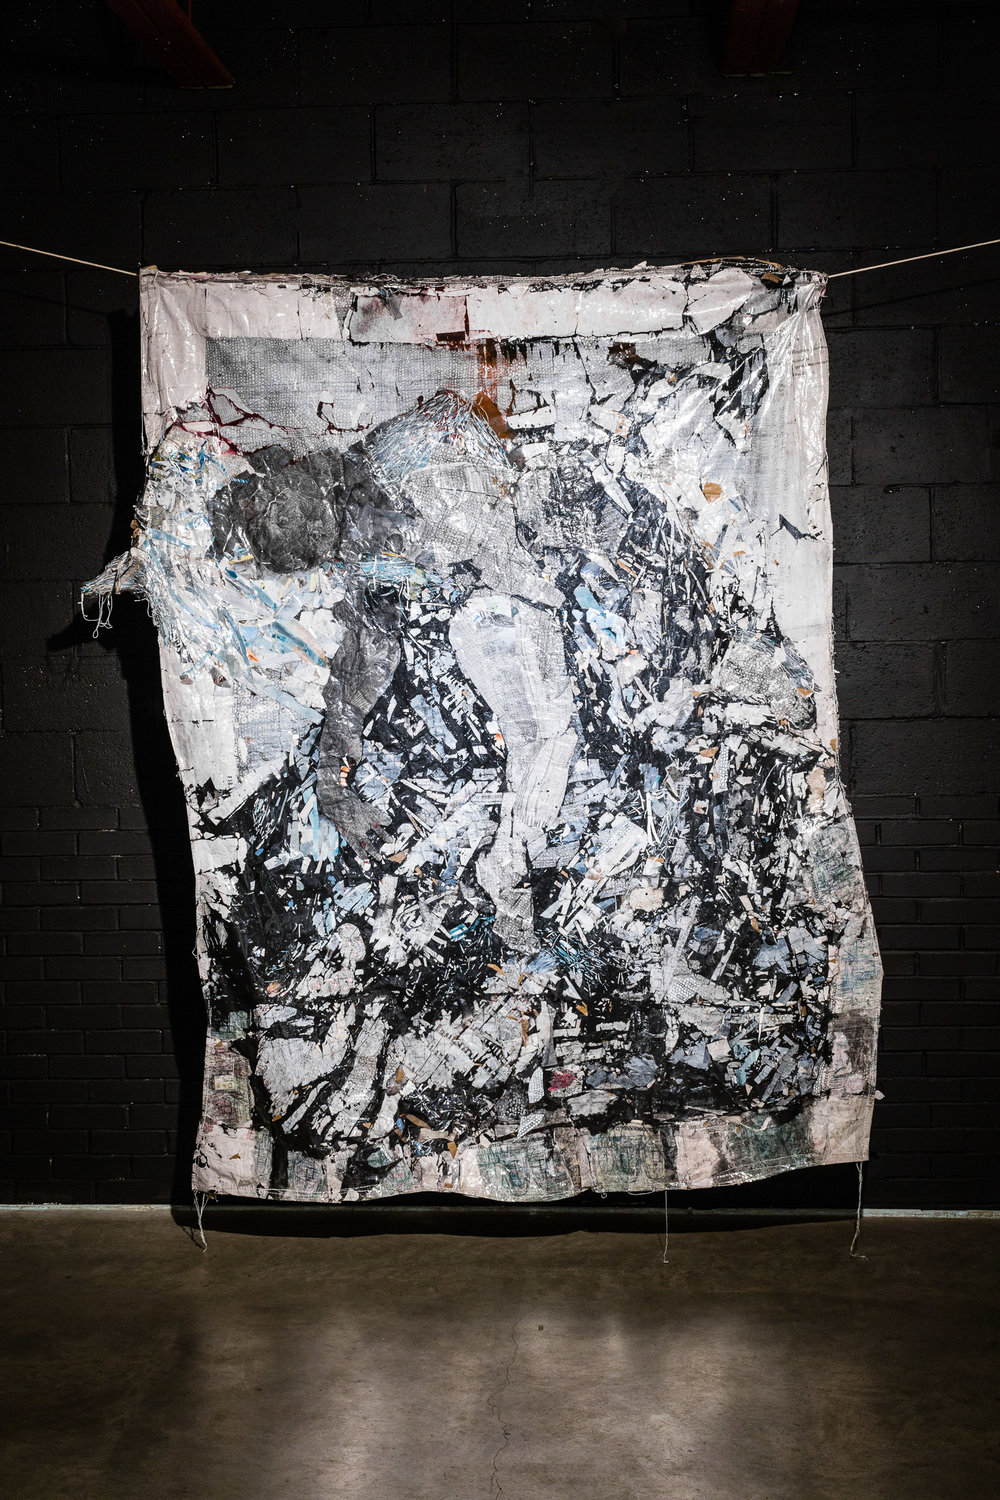 Kyle B. Co. / Dying of Thirst in The River / white male marks, graphite, mixed media and collage - on clothesline / ~72 in x 89 in / 2017